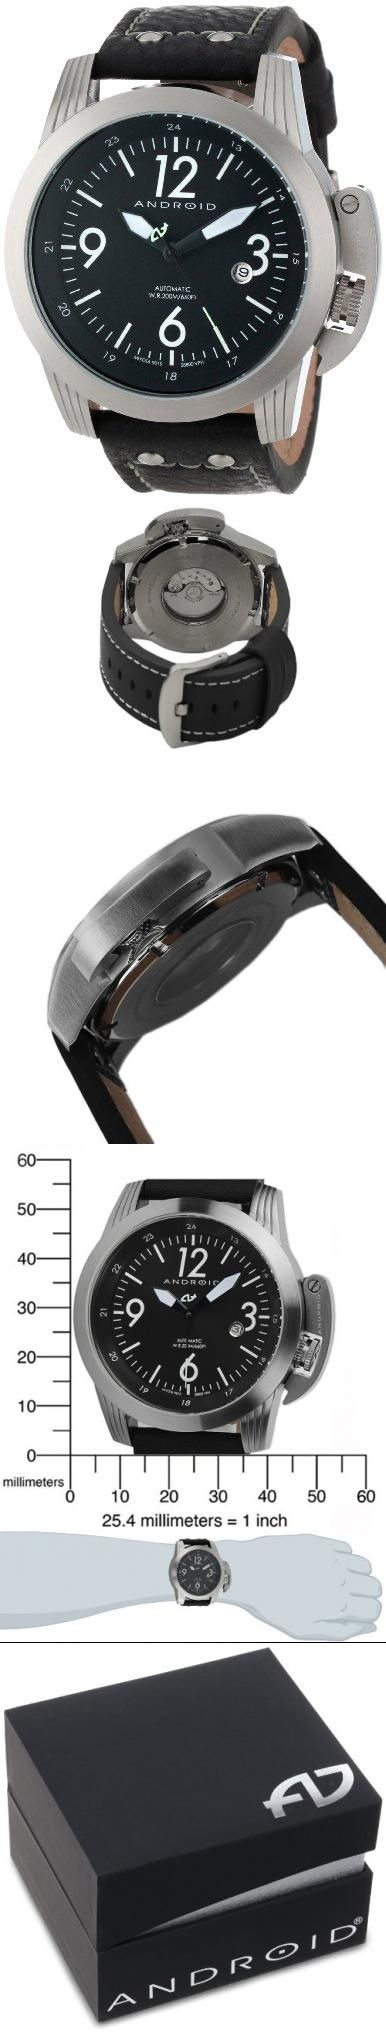 Android Men's AD614BK Skyguardian, Miyota 9015 Automatic 24 Jewels 28800 VPH Watch Miyota 9015 28800VPH. Crown: screw down. Bracelet measurements: 8.75''. Case measurements: 48x48. Case thickness: 17mm. Water-resistant to 200 M (660 feet).  #Android #Watch